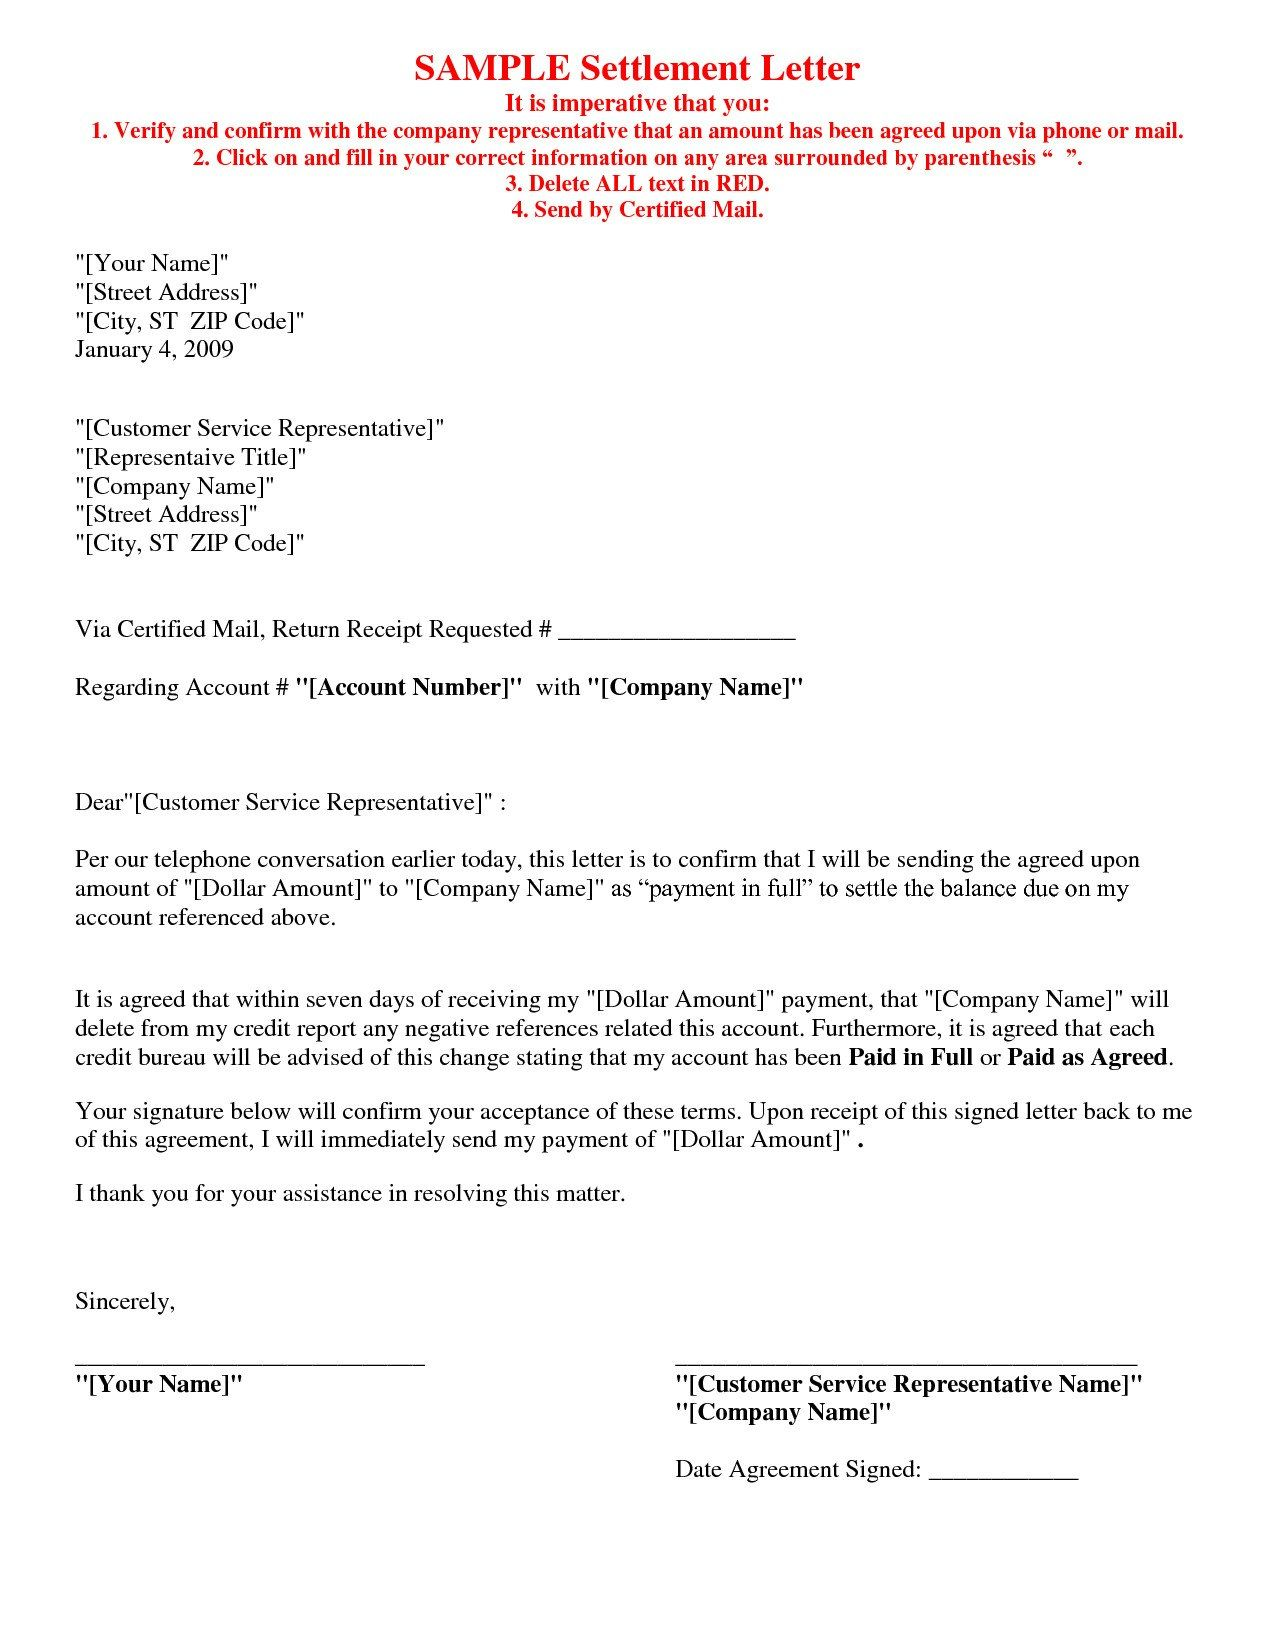 Final Settlement Letter Sample The Best Settlement In Word Pertaining To Full And Final Settlement Offer Le In 2020 Credit Repair Letters Debt Settlement Credit Repair